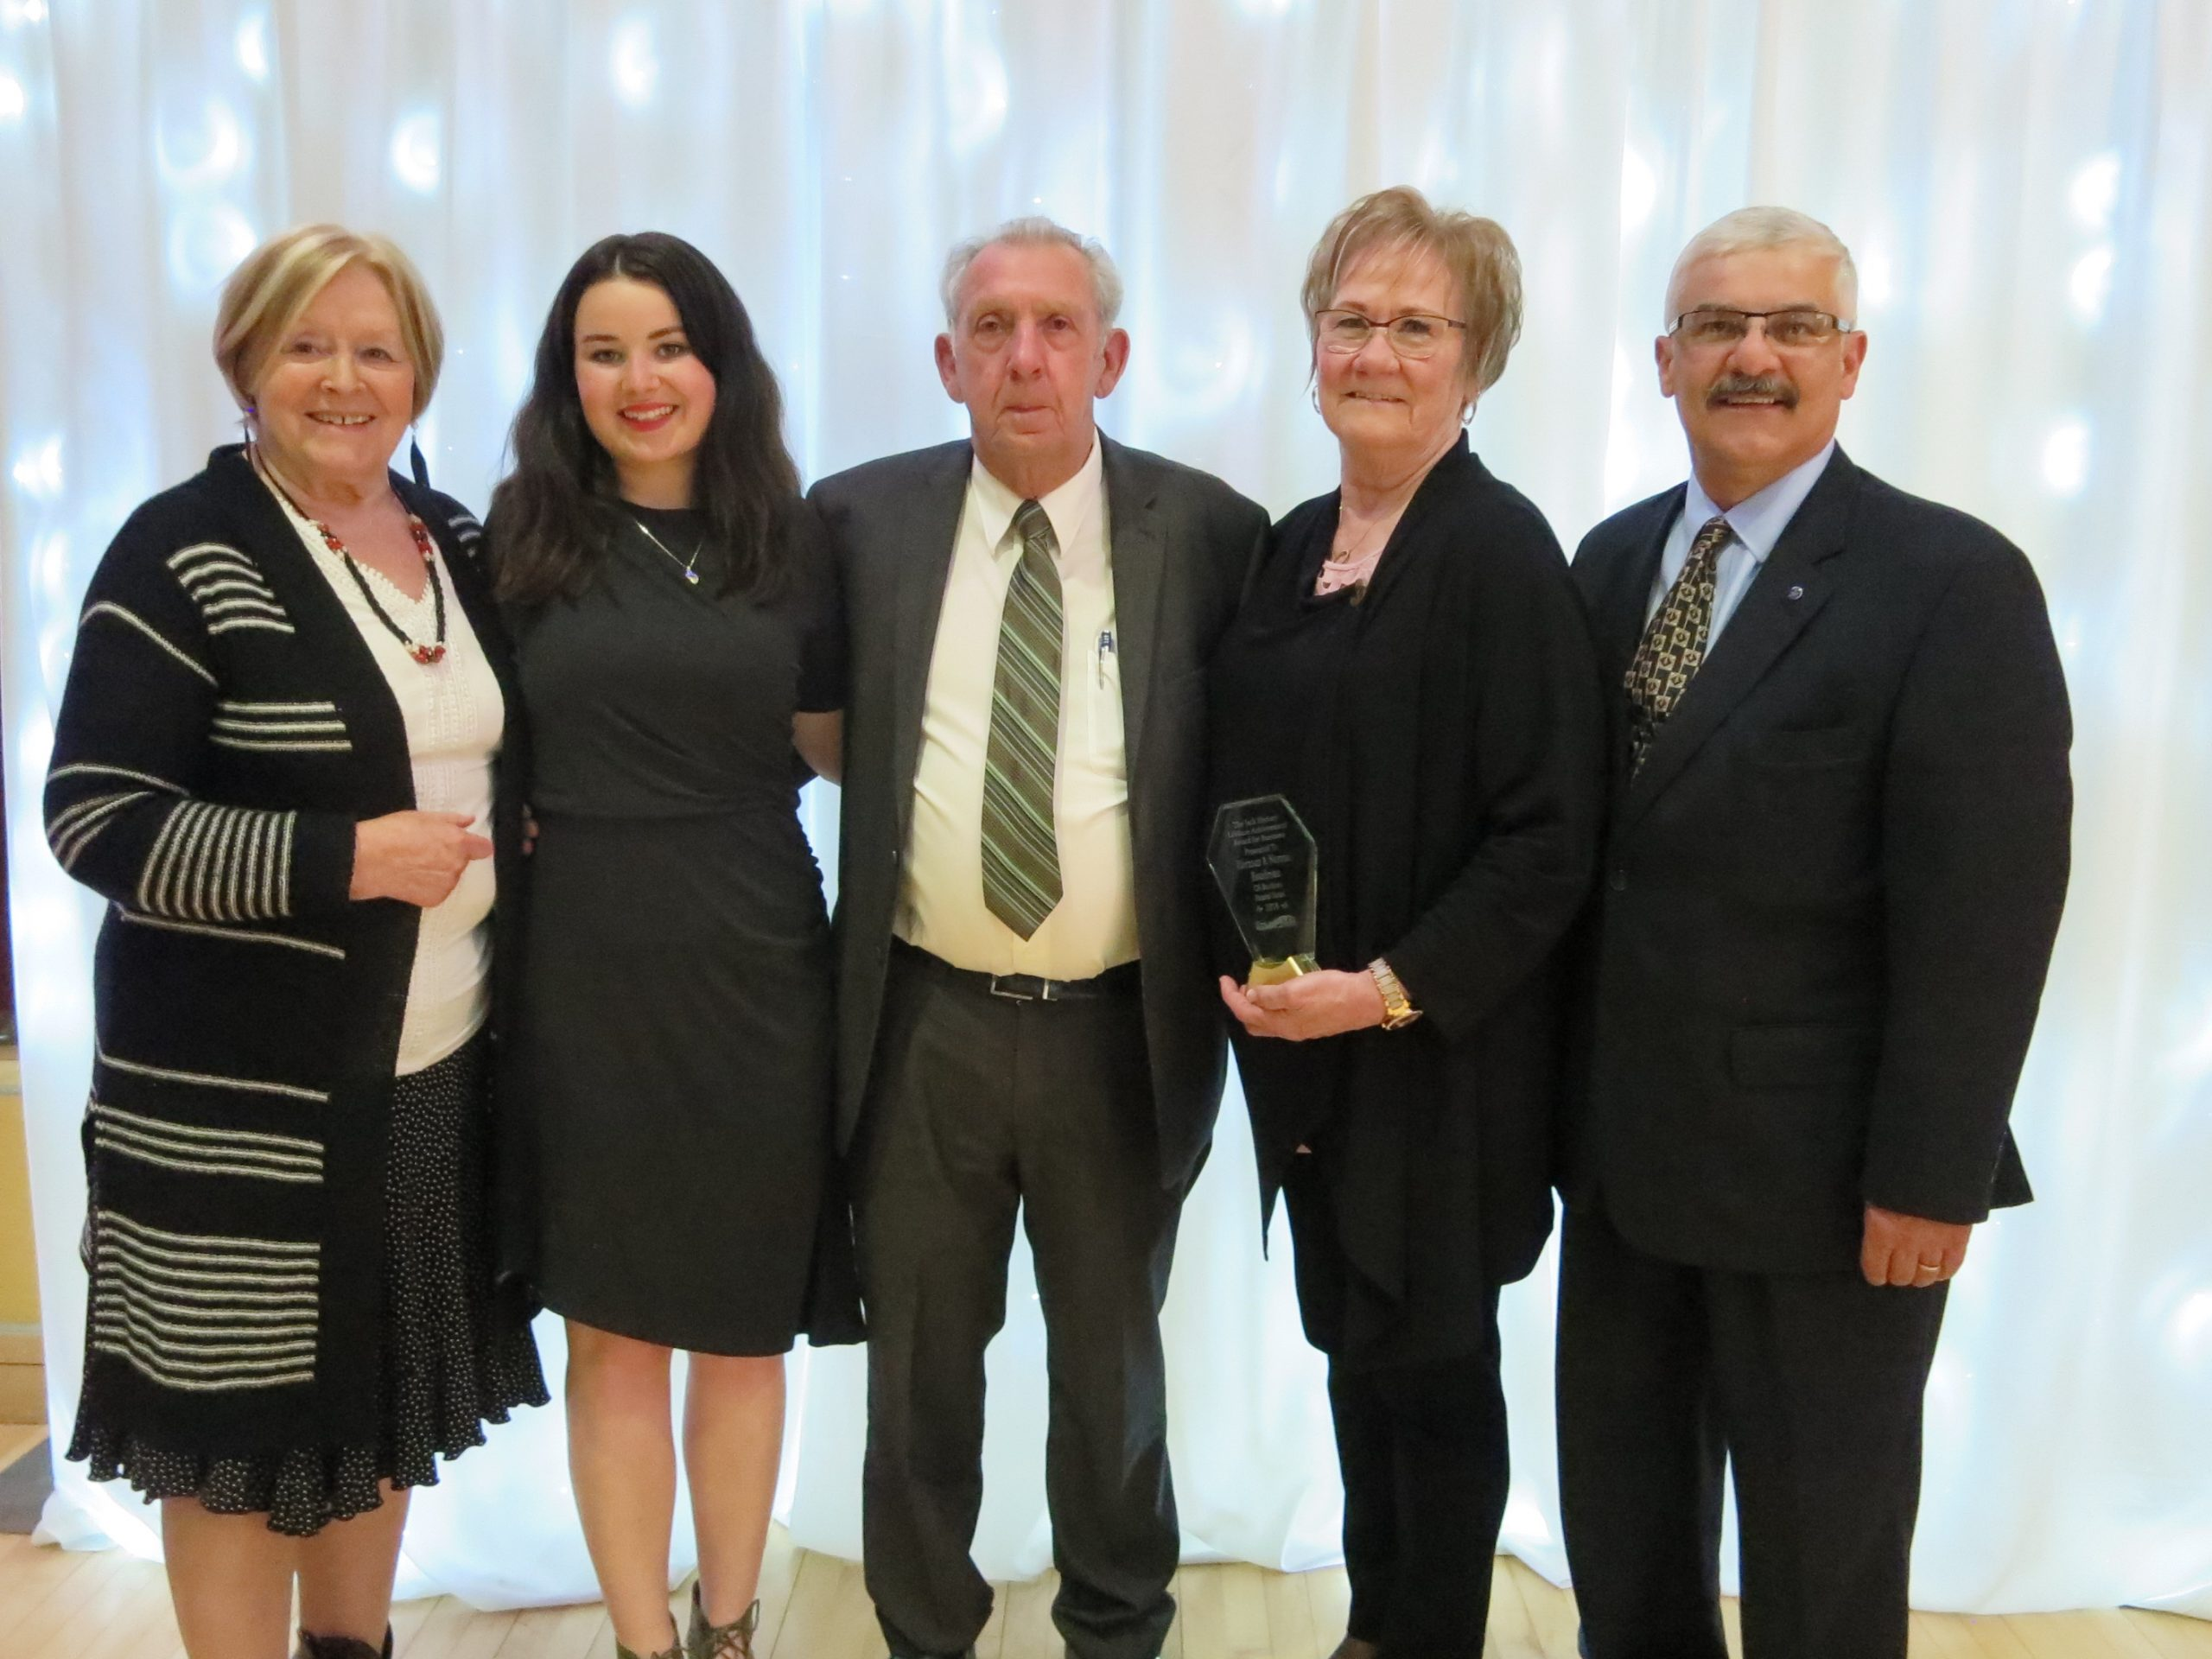 Chamber reps present annual awards